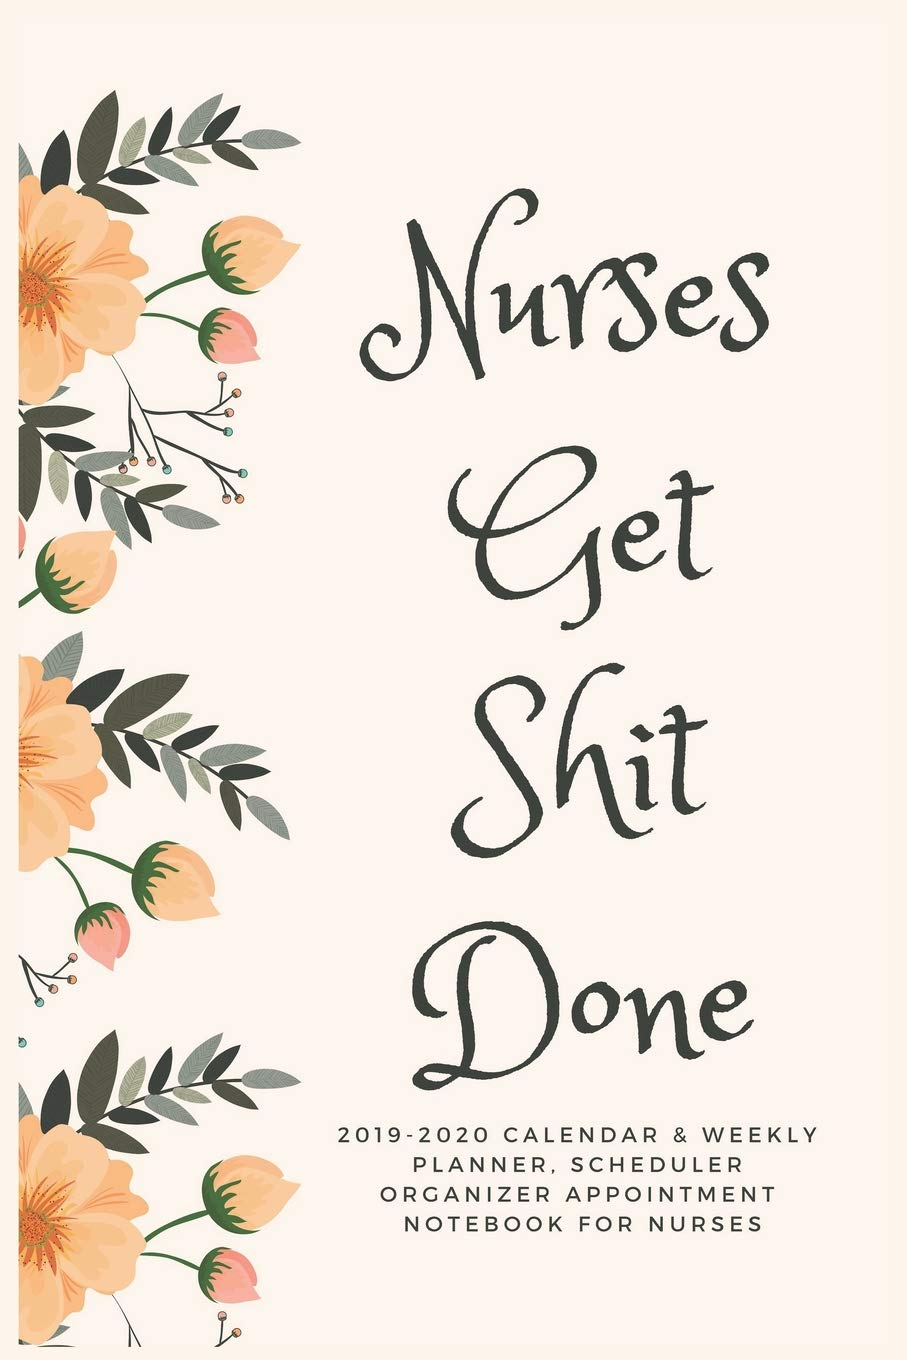 February Appointment Calendar 2020 Nurses Get Shit Done: 2019 2020 Calendar & Weekly Planner